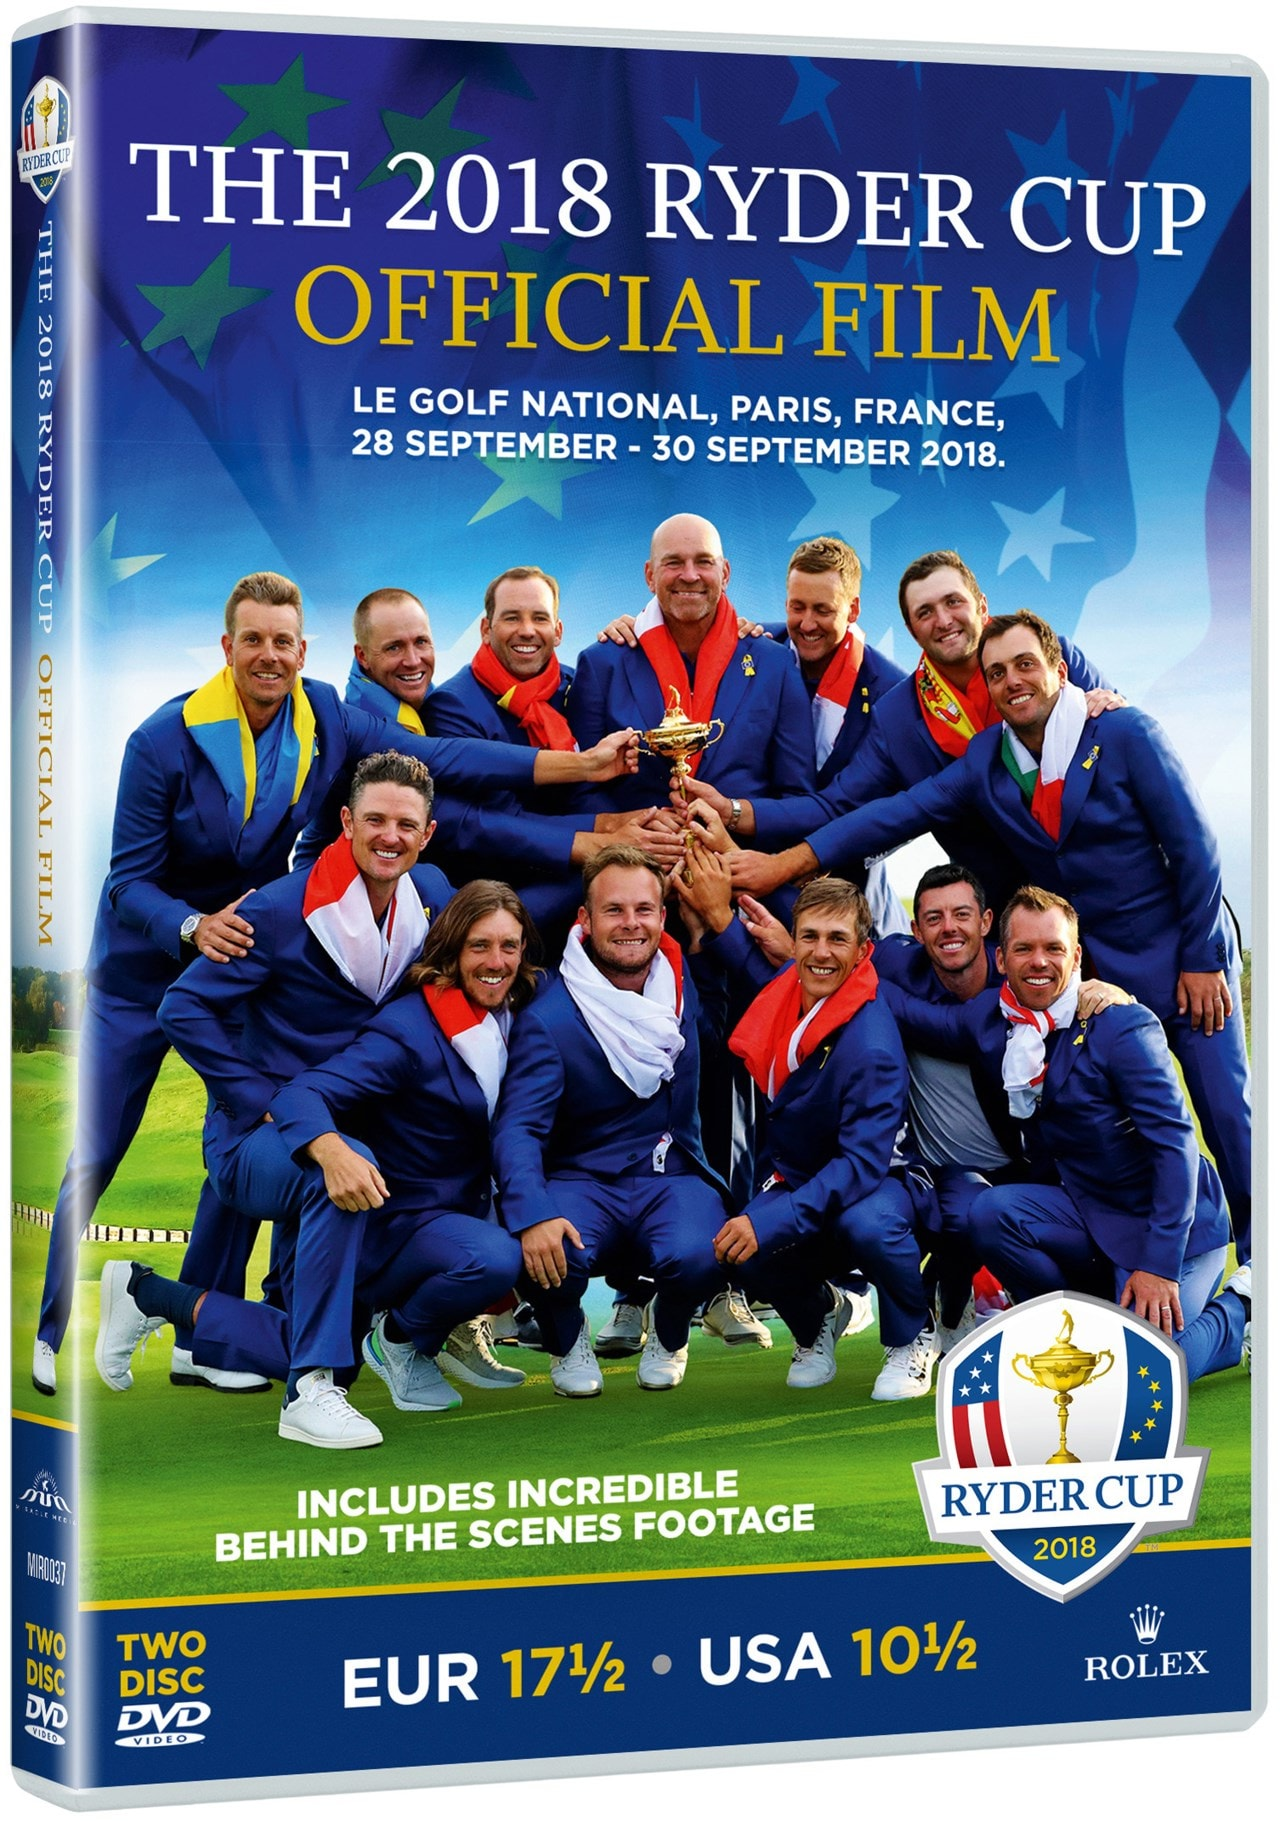 The 2018 Ryder Cup Official Film - 2